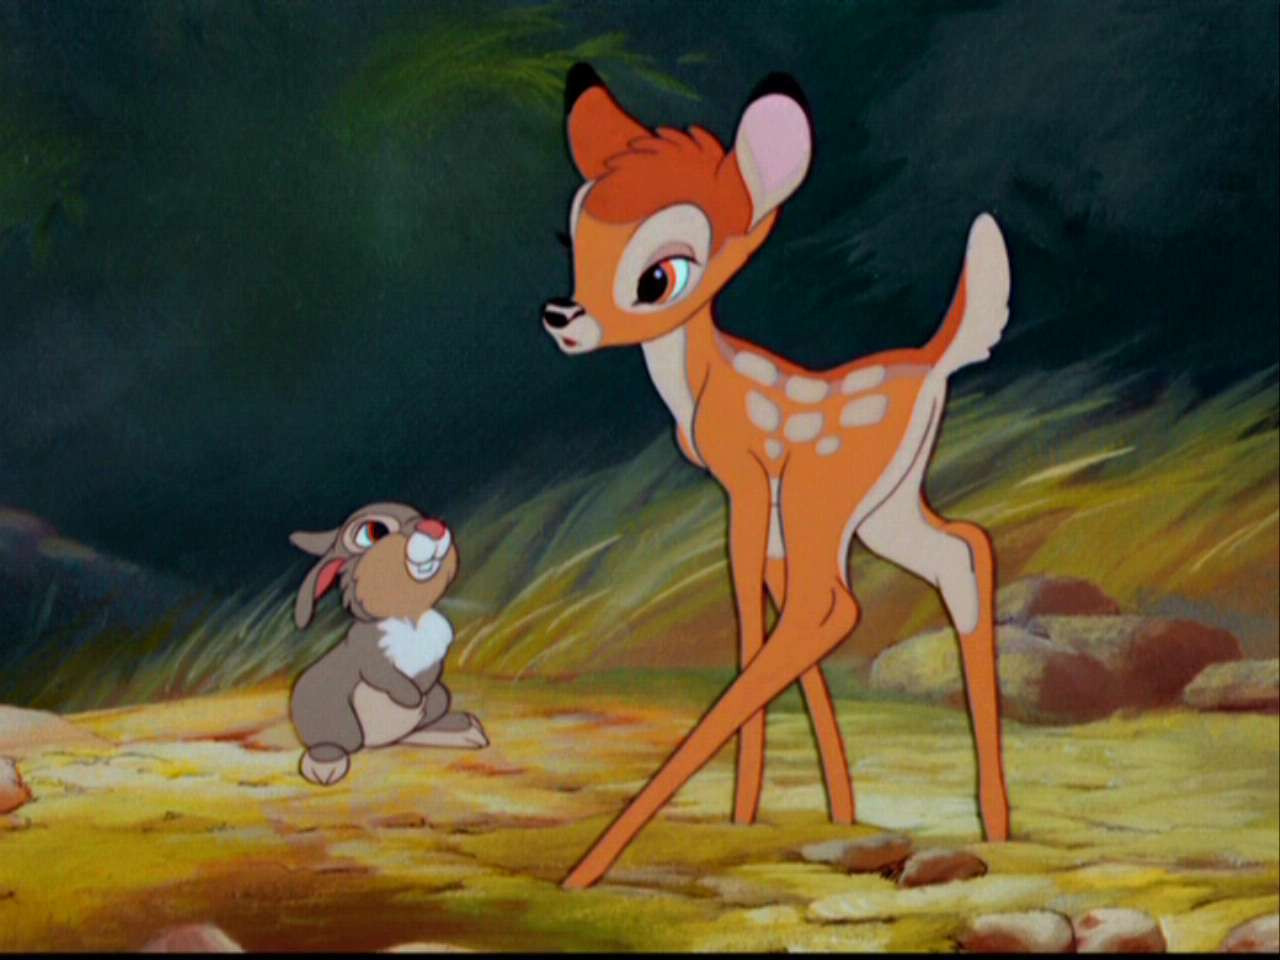 bambi images bambi hd wallpaper and background photos 5777872